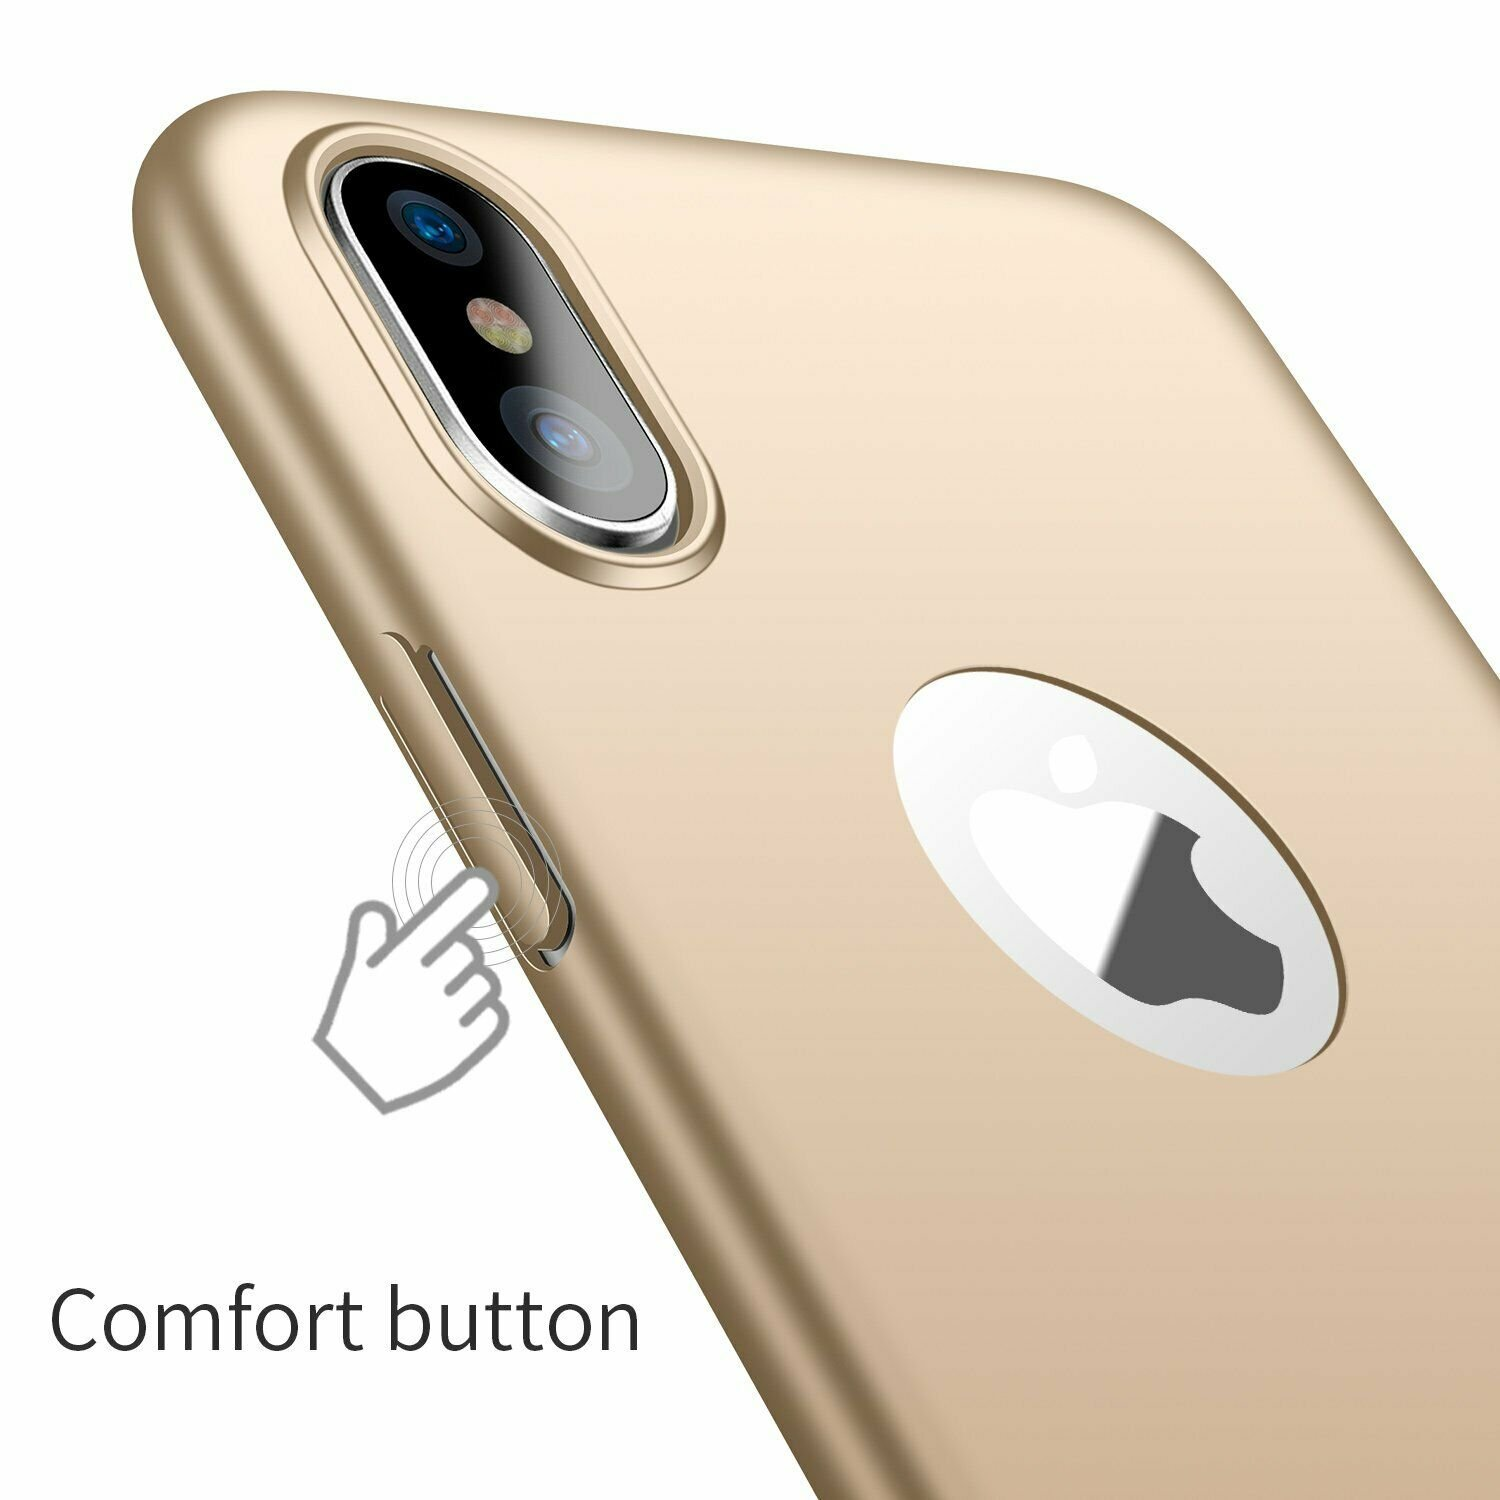 For-iPhone-X-XR-XS-Max-Matte-Case-Shockproof-Ultra-Thin-Slim-Hard-Cover thumbnail 35